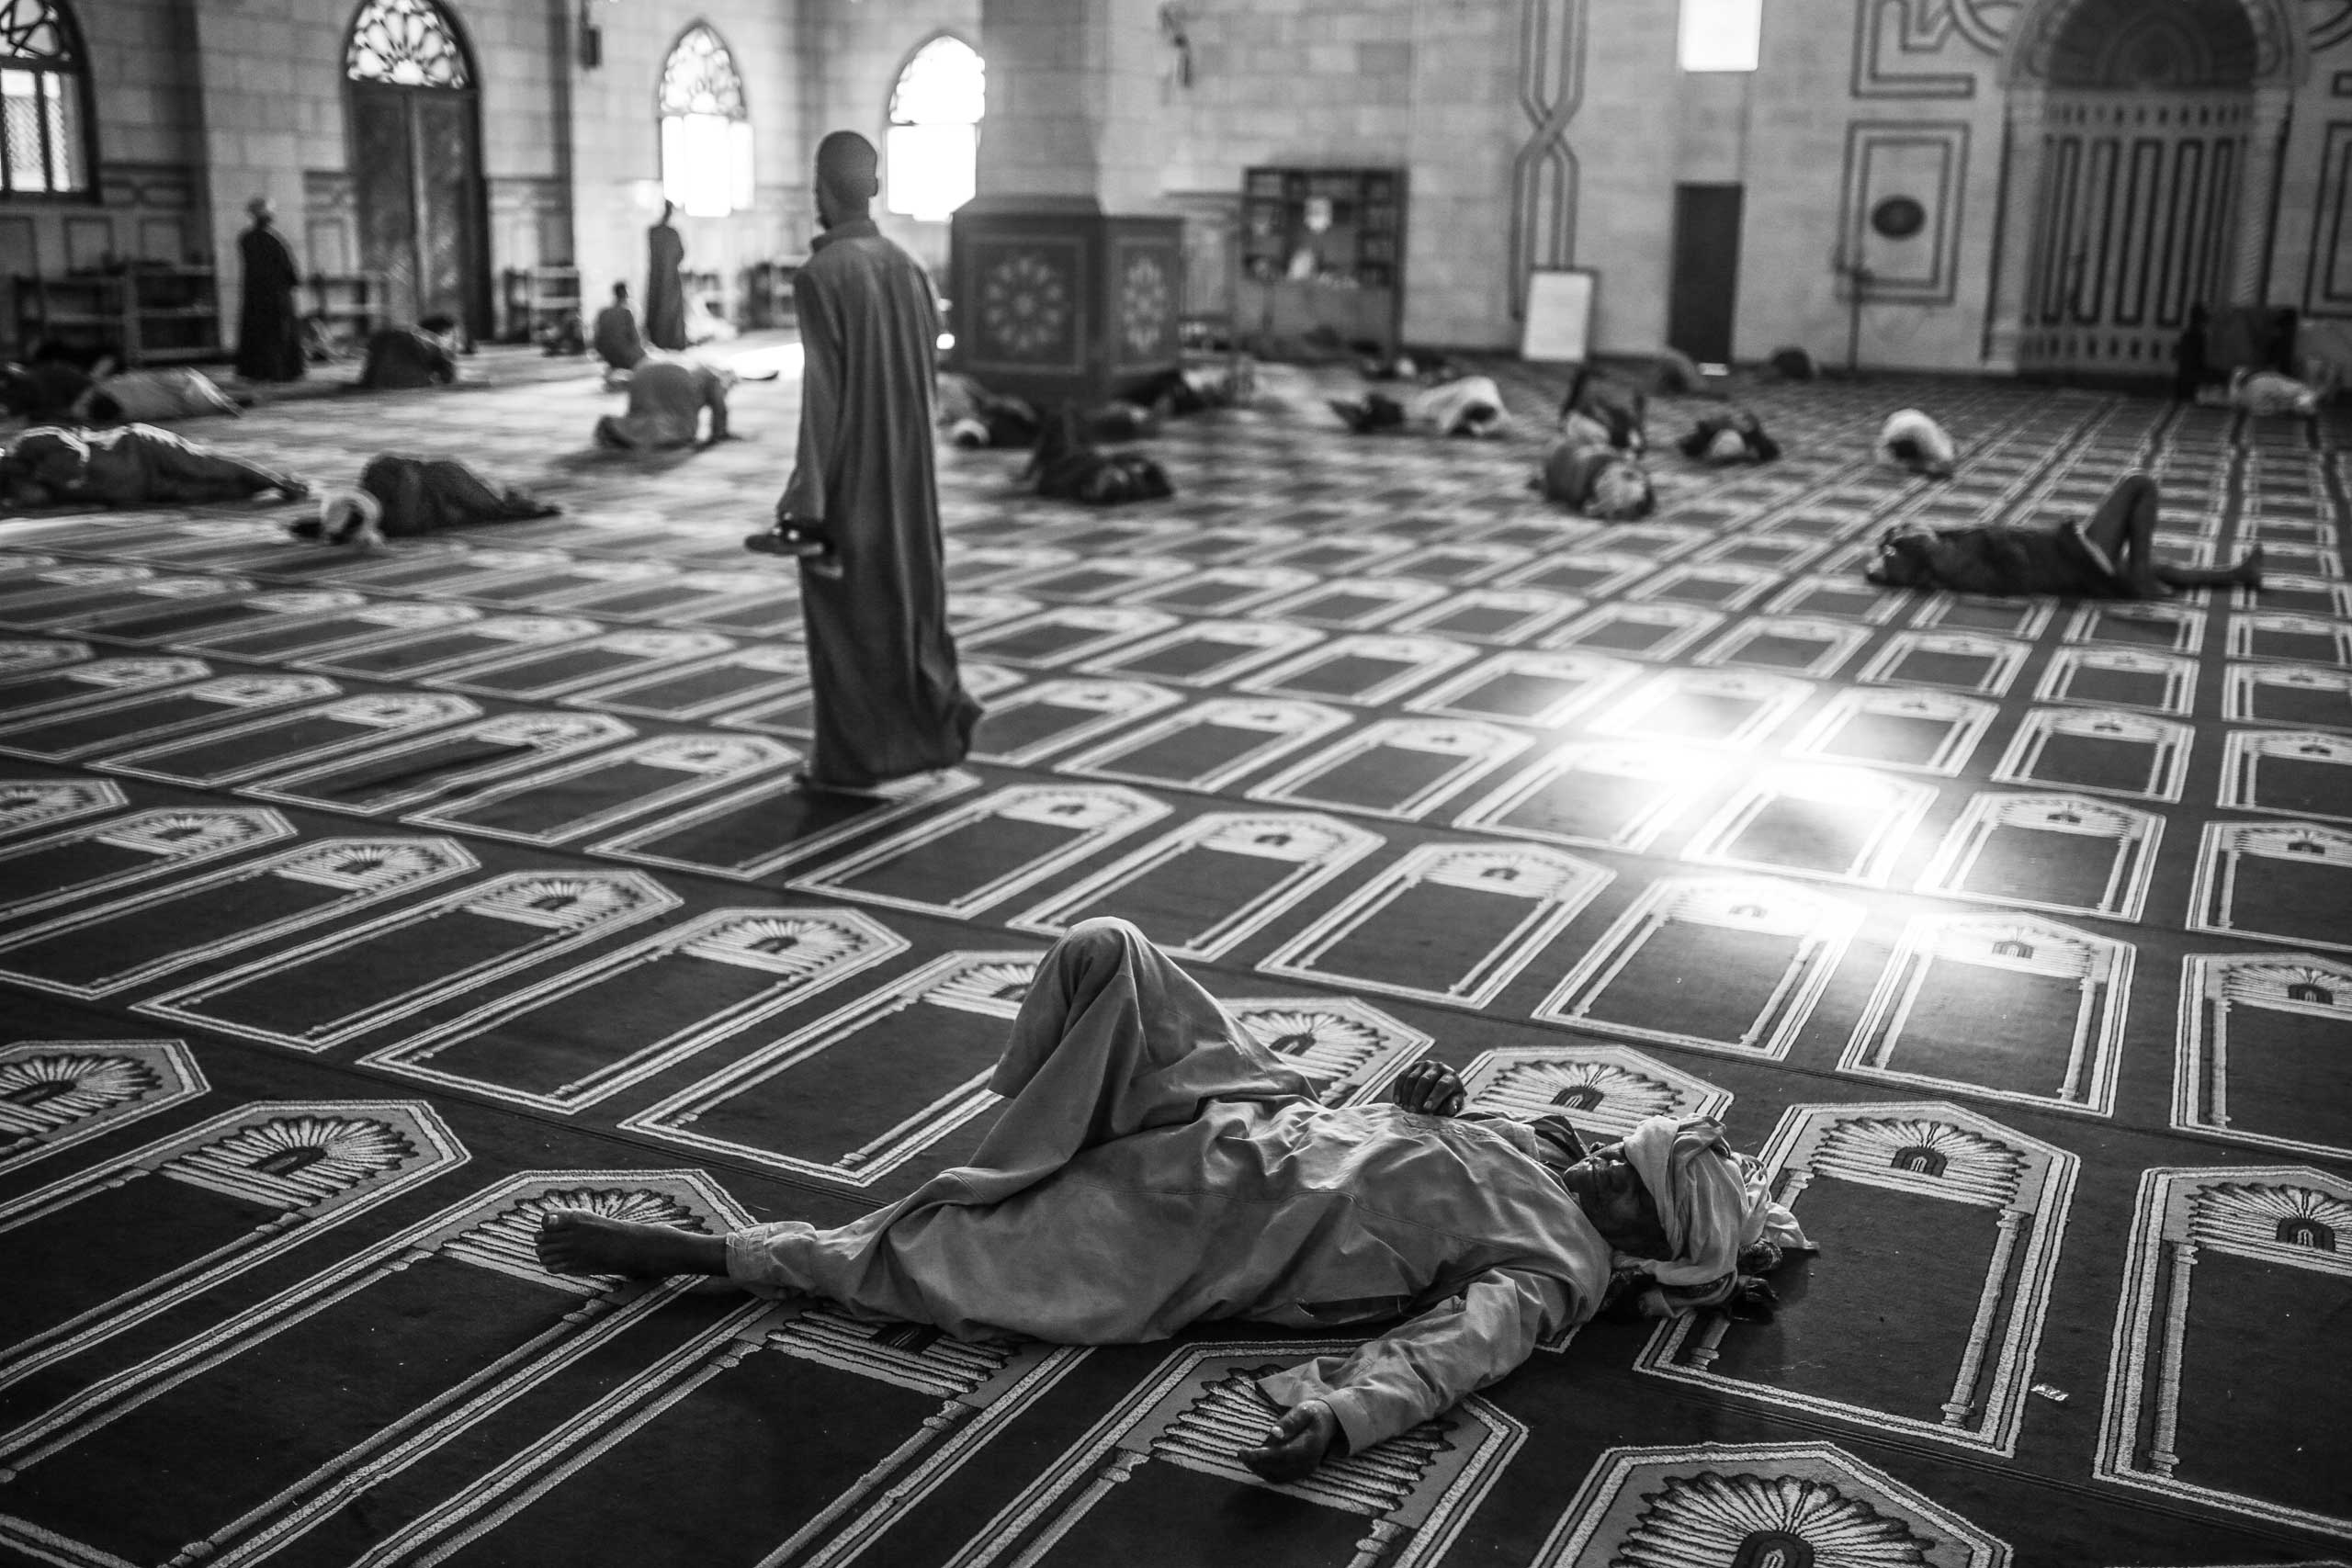 Worshippers take an early morning rest at the Abul-Hassan Al-Shazly mosque. Humaithara, Red Sea Governorate, Egypt. Oct. 1, 2014.